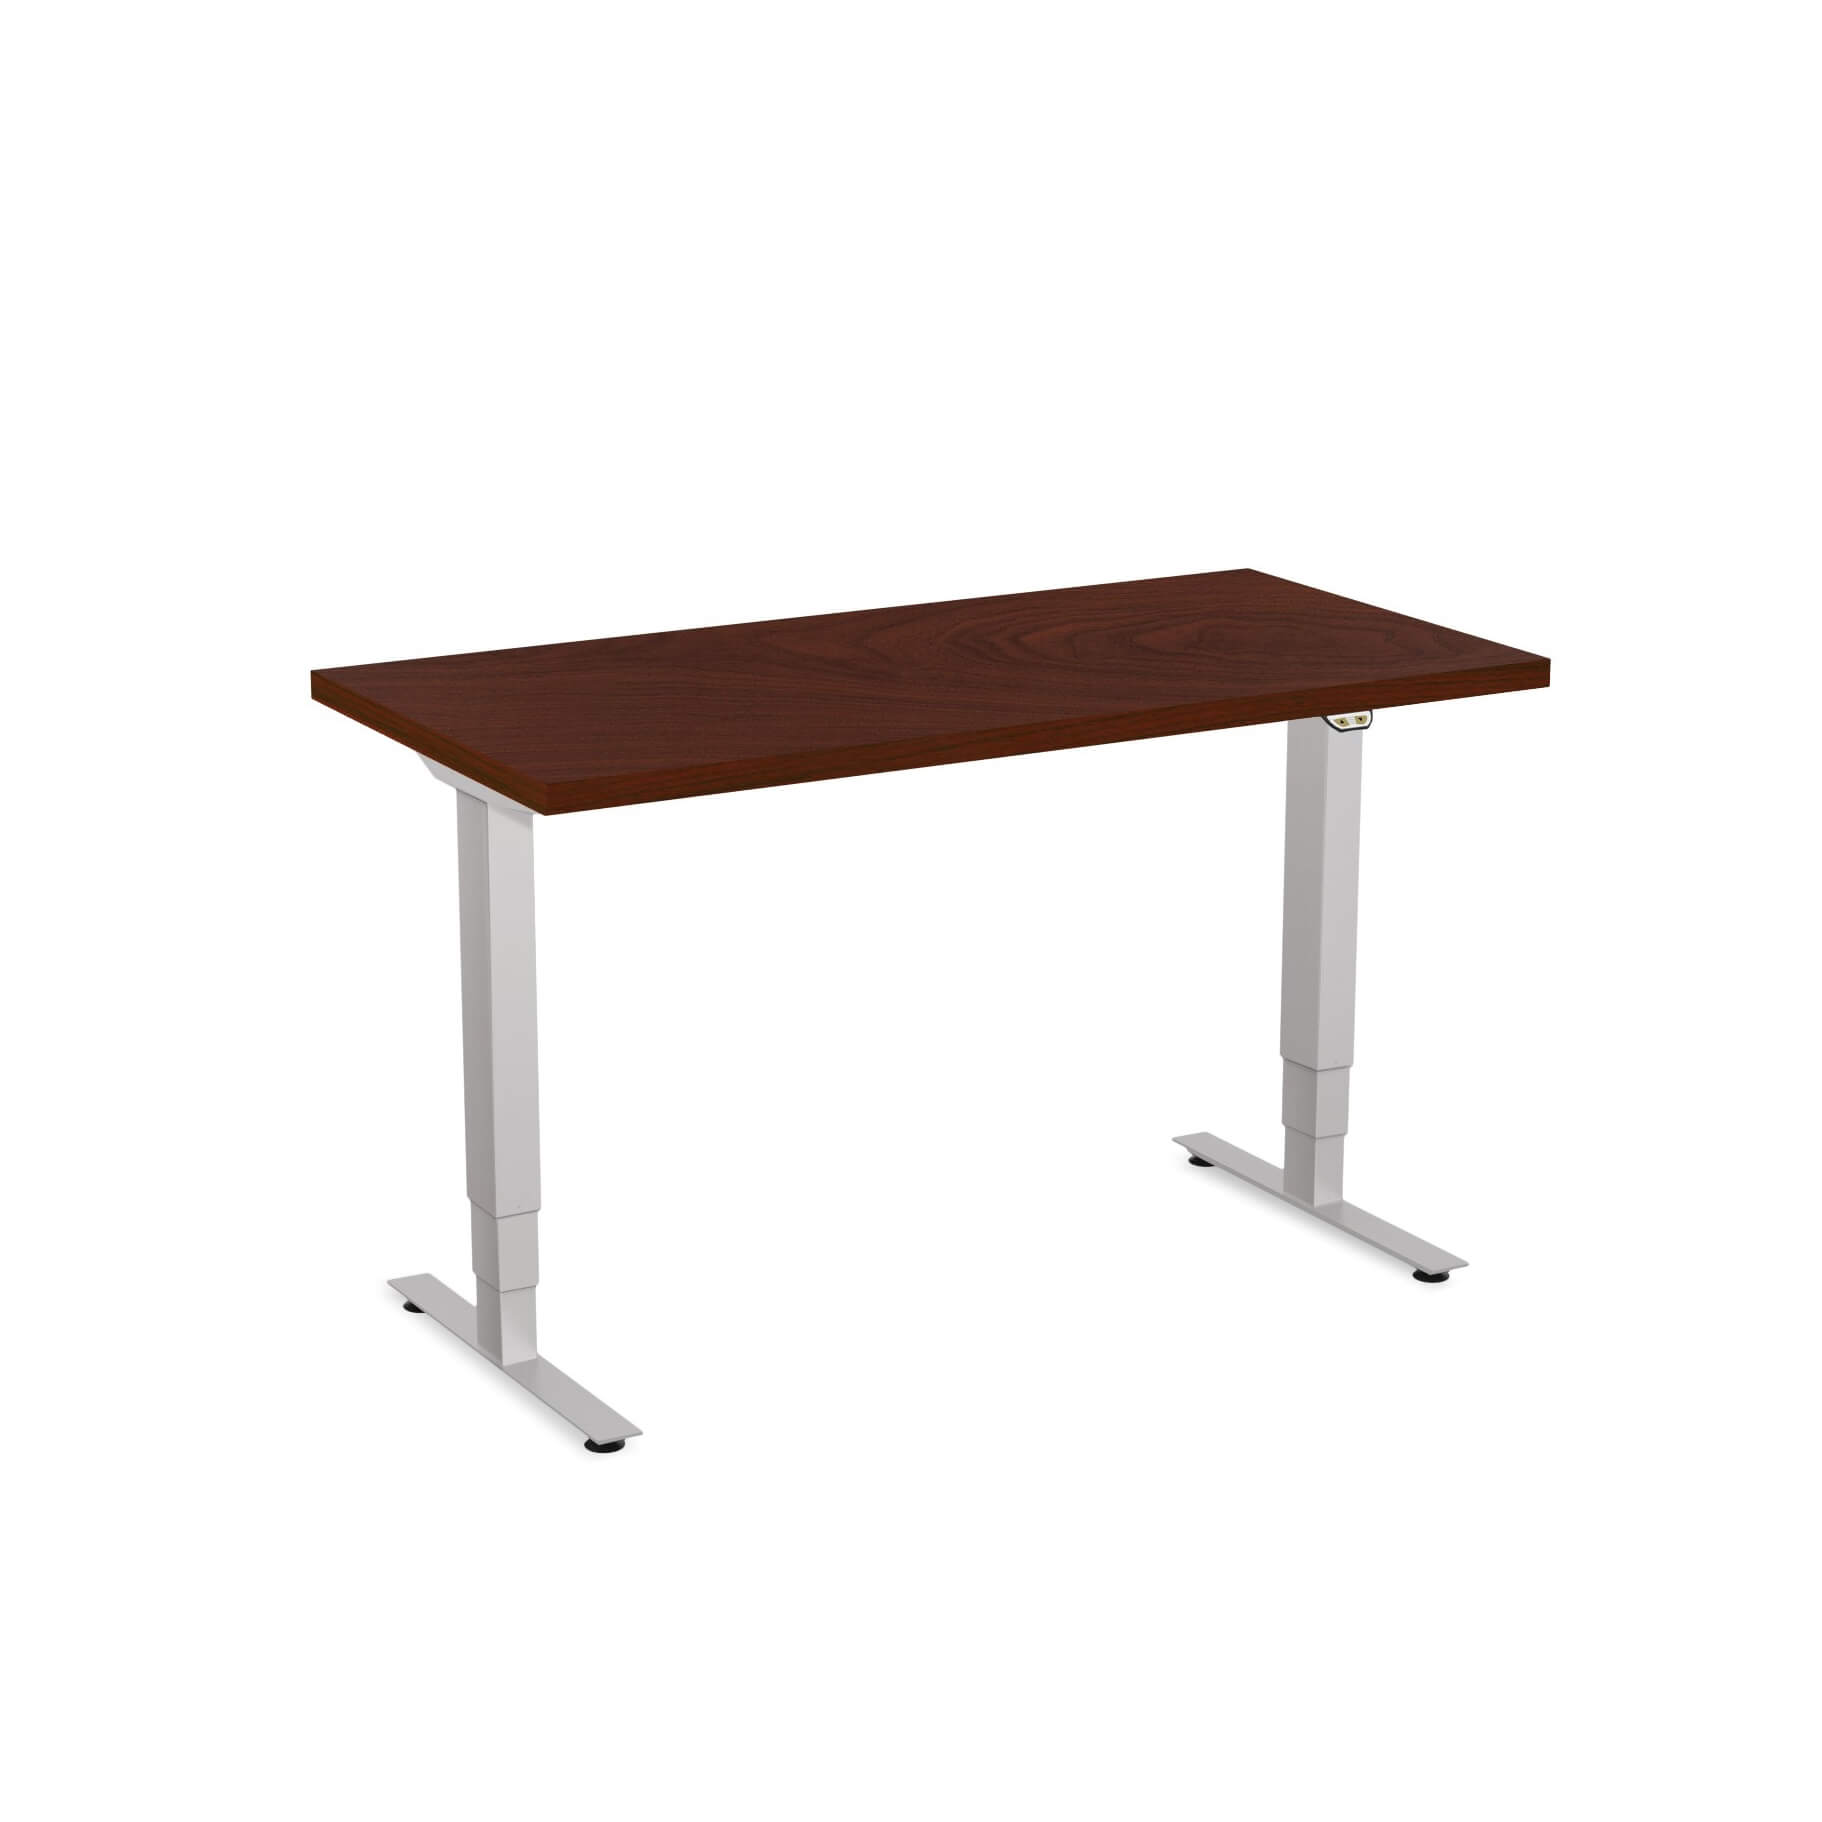 Sit stand desk adjustable CUB 1D PATR 2448 MH EPS 1